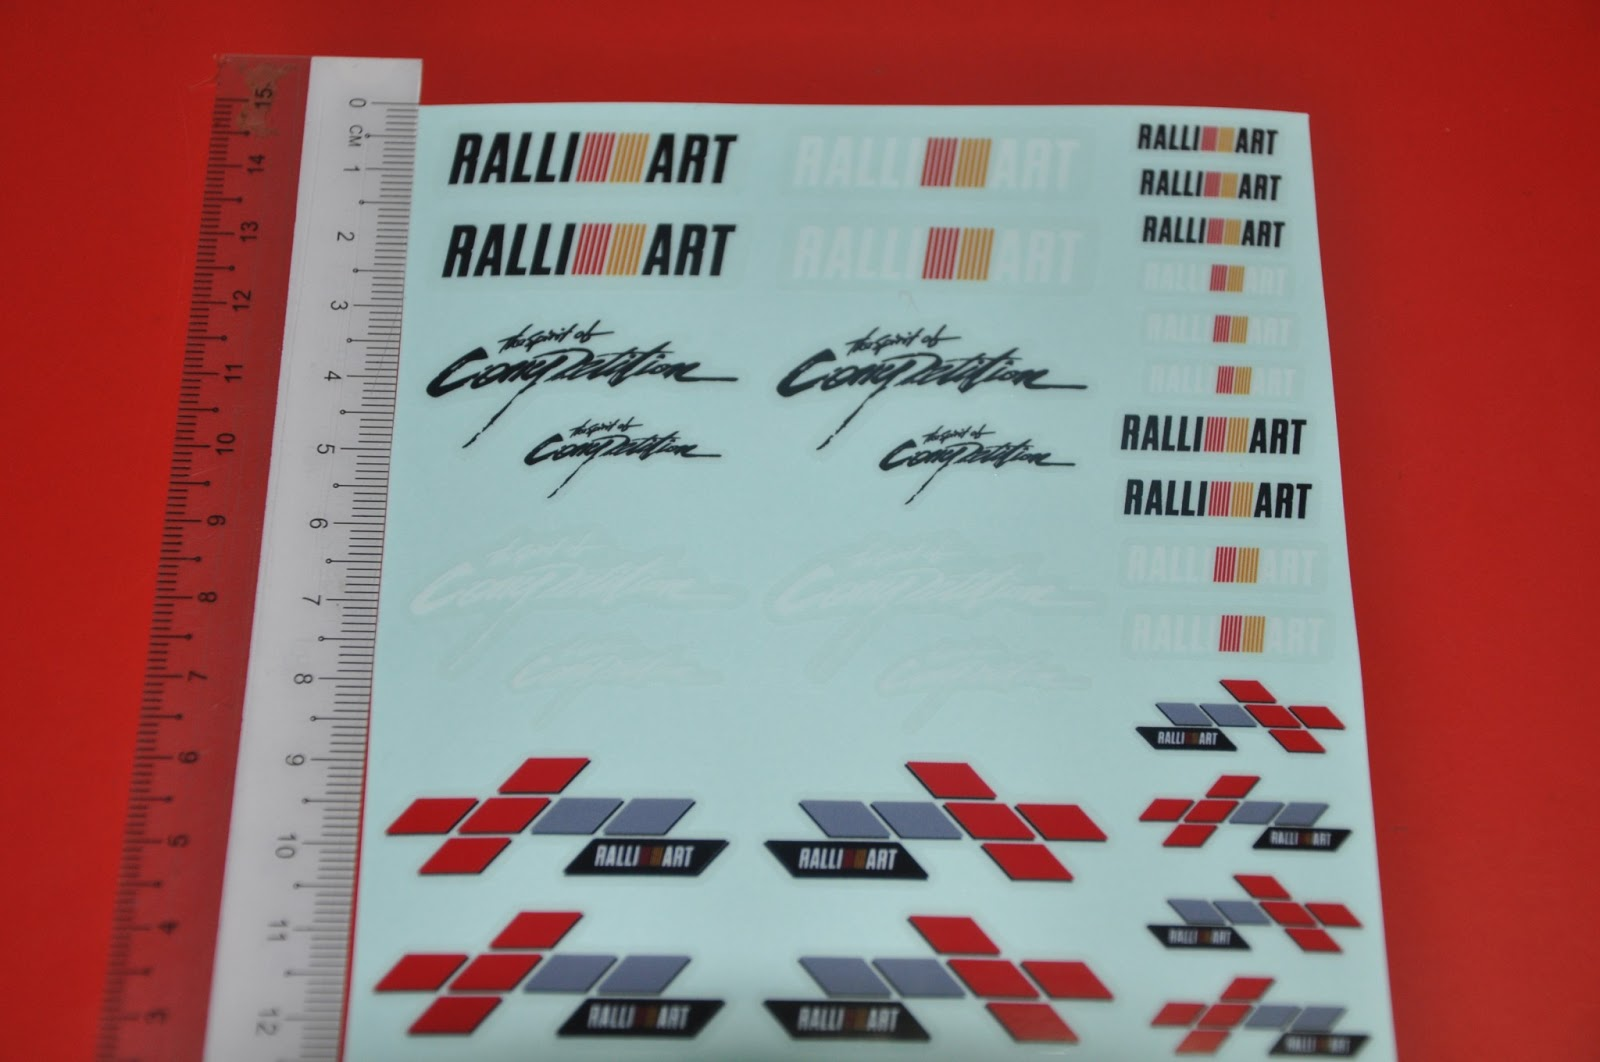 Ralli Art, The Spirit of Competition 4